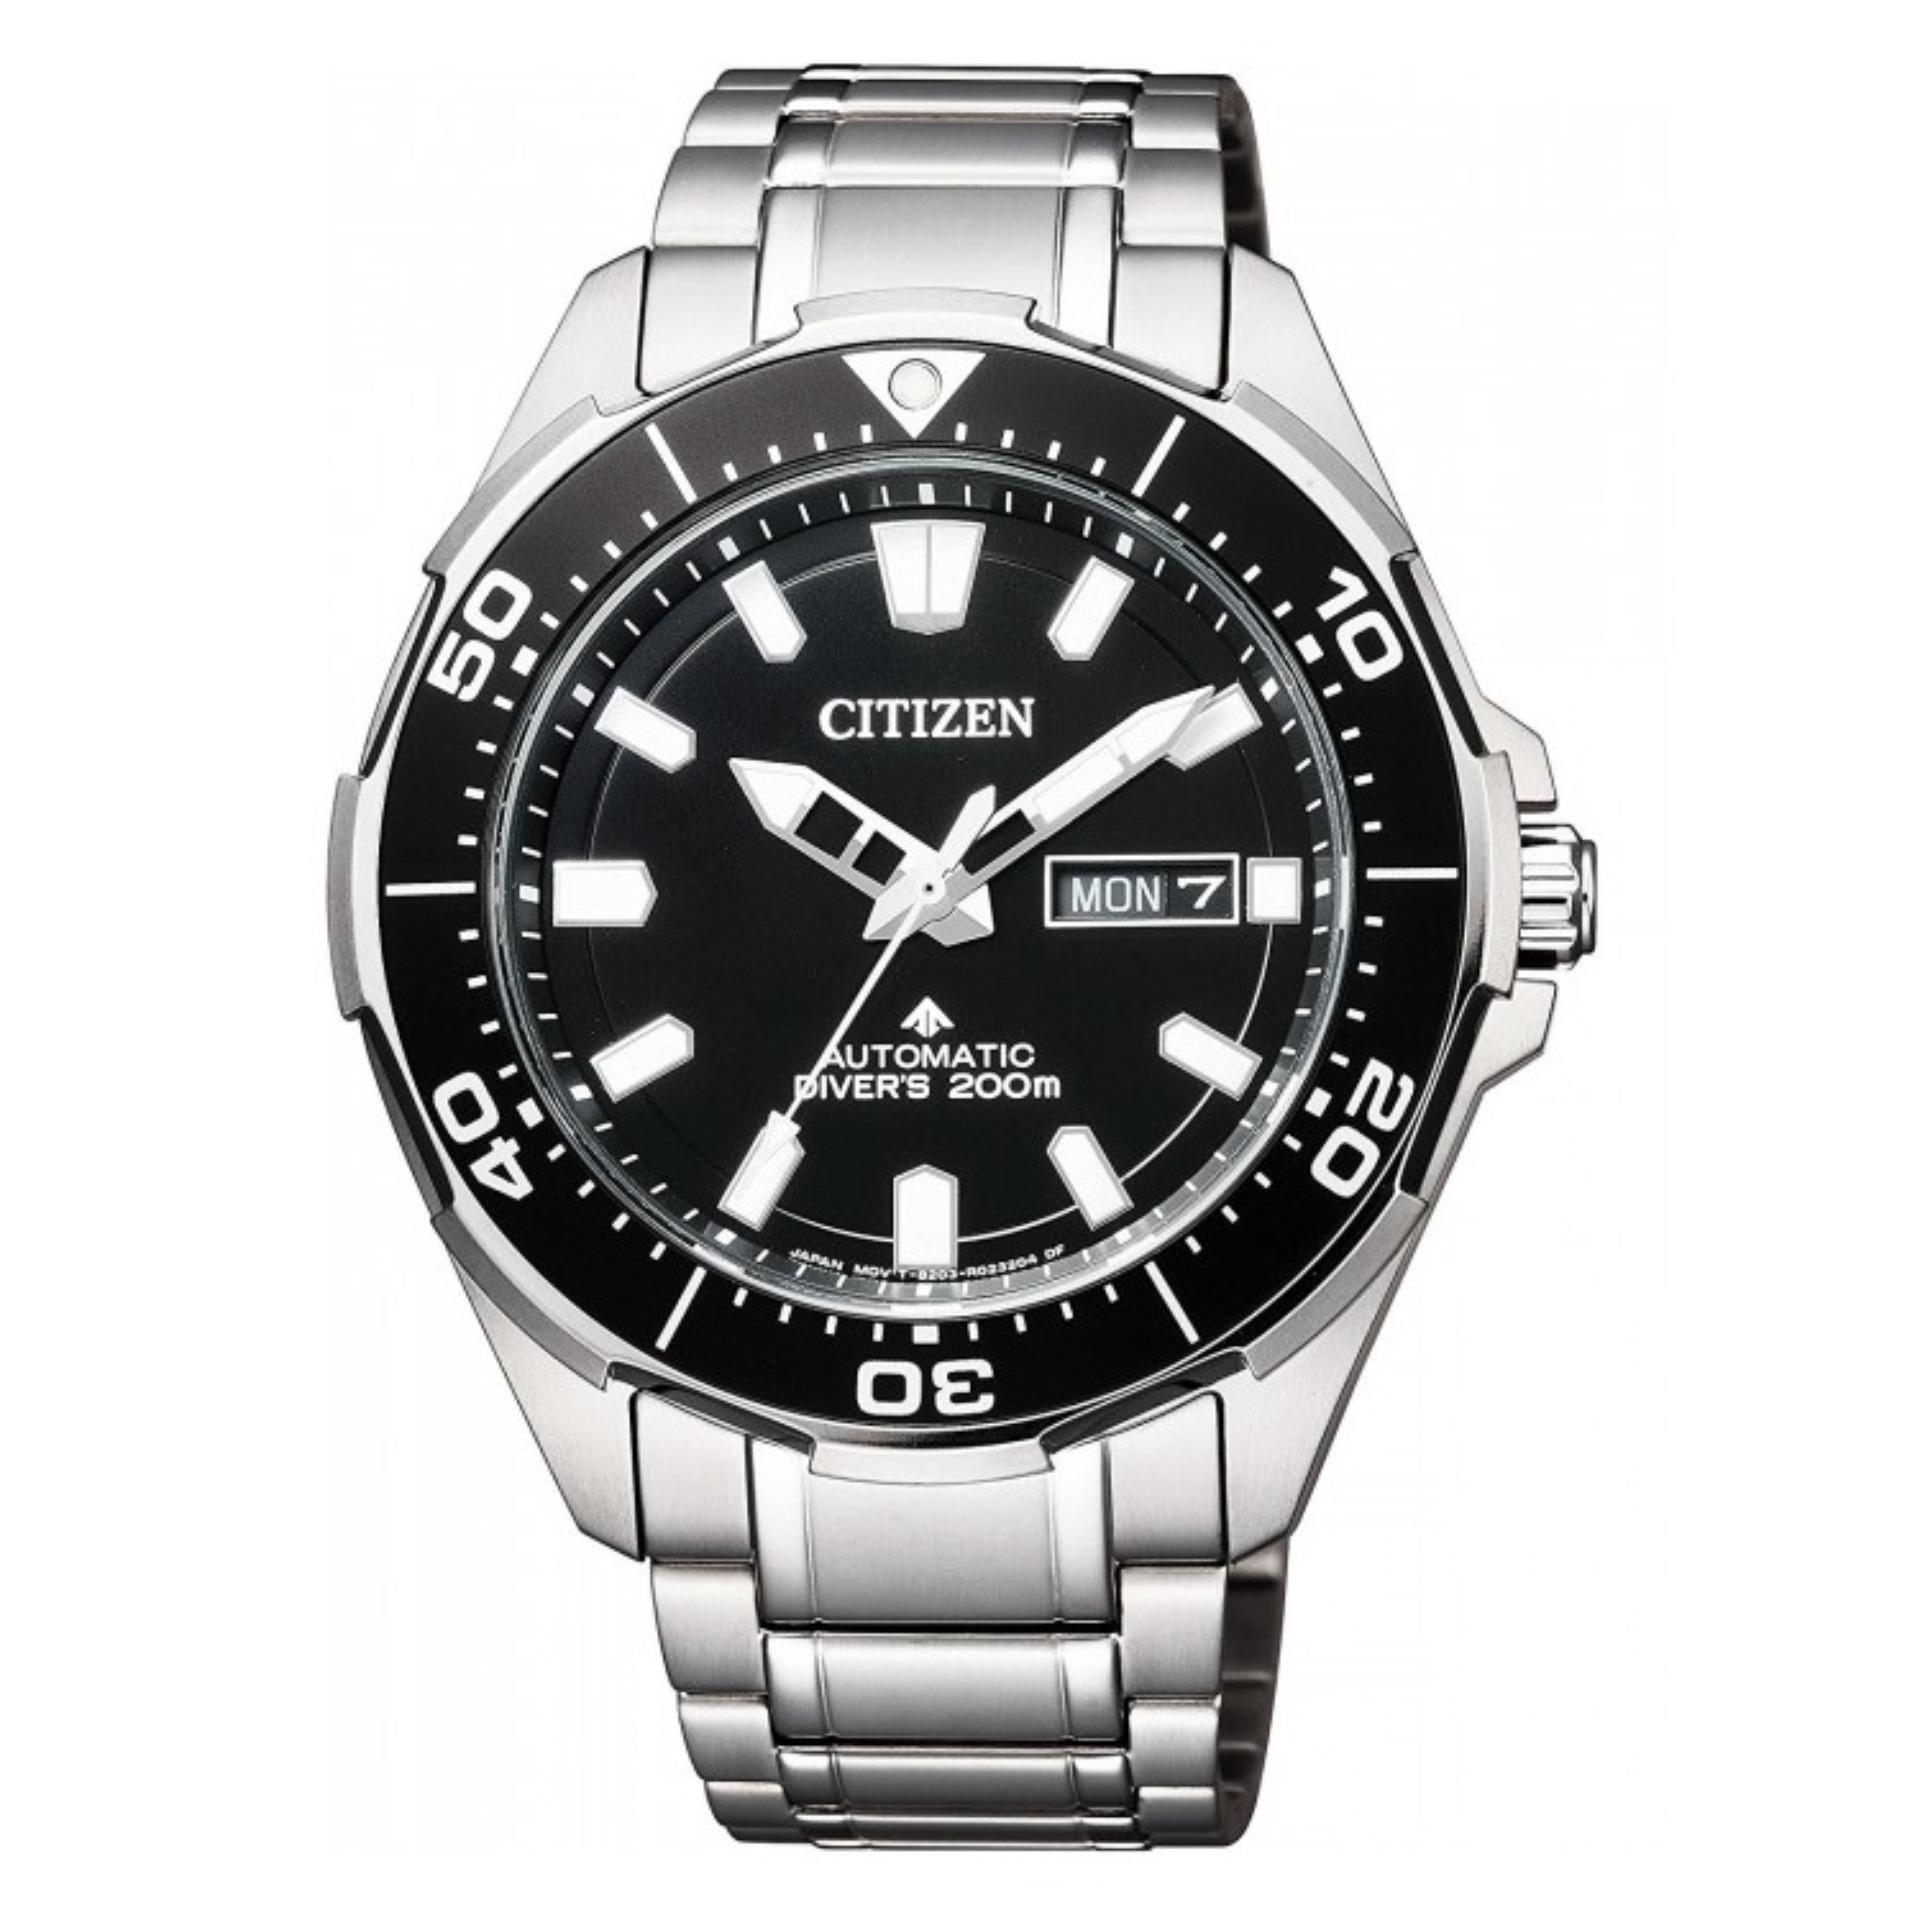 Citizen NY0070-83E Automatic Titanium Analog Divers Men Watch Malaysia